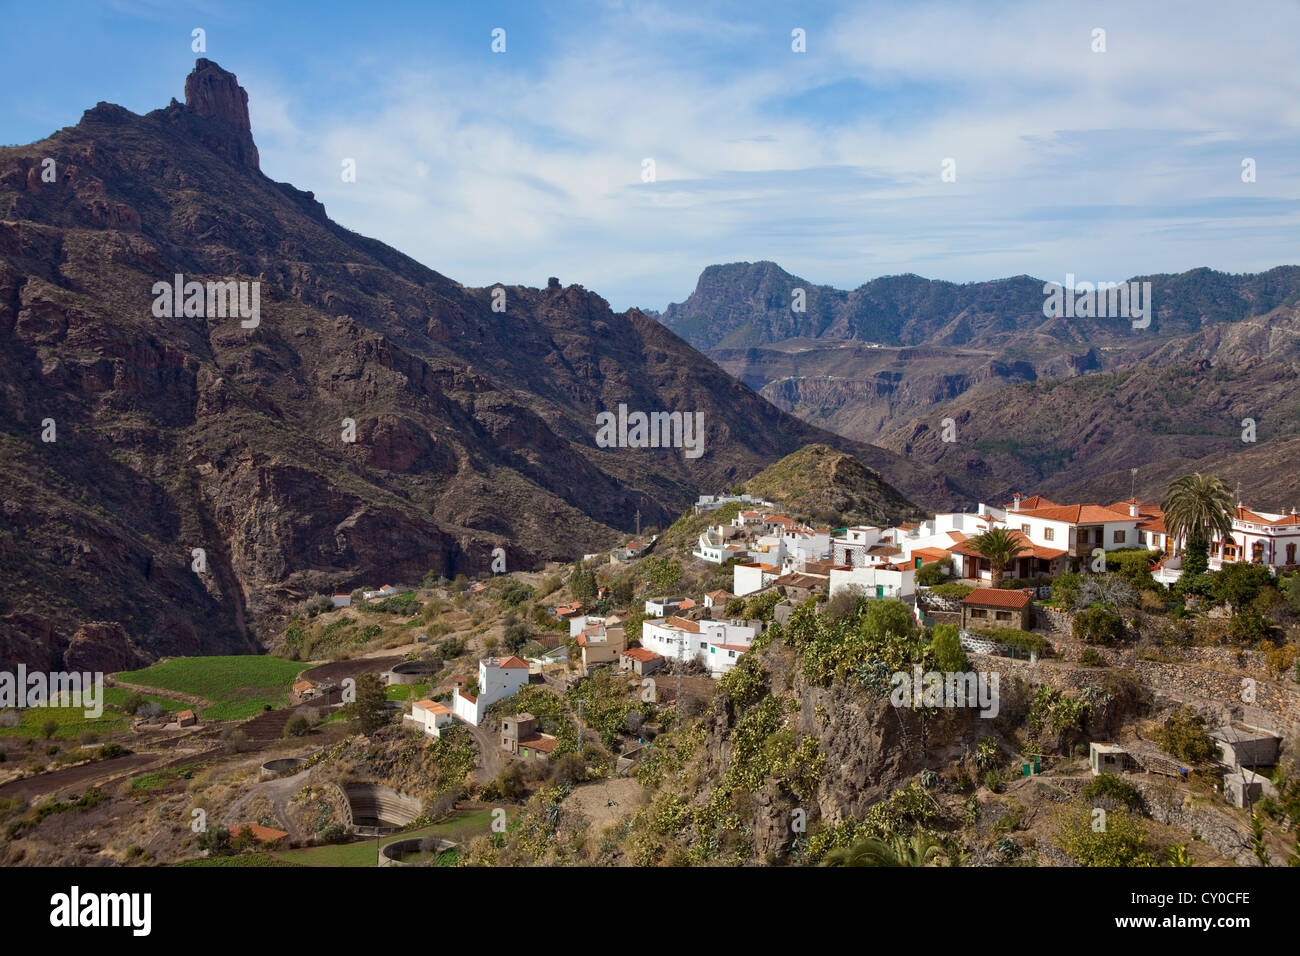 View towards the mountain village of Tejeda and the Roque Bentayga mountain, Gran Canaria, Canary Islands, Spain, Stock Photo